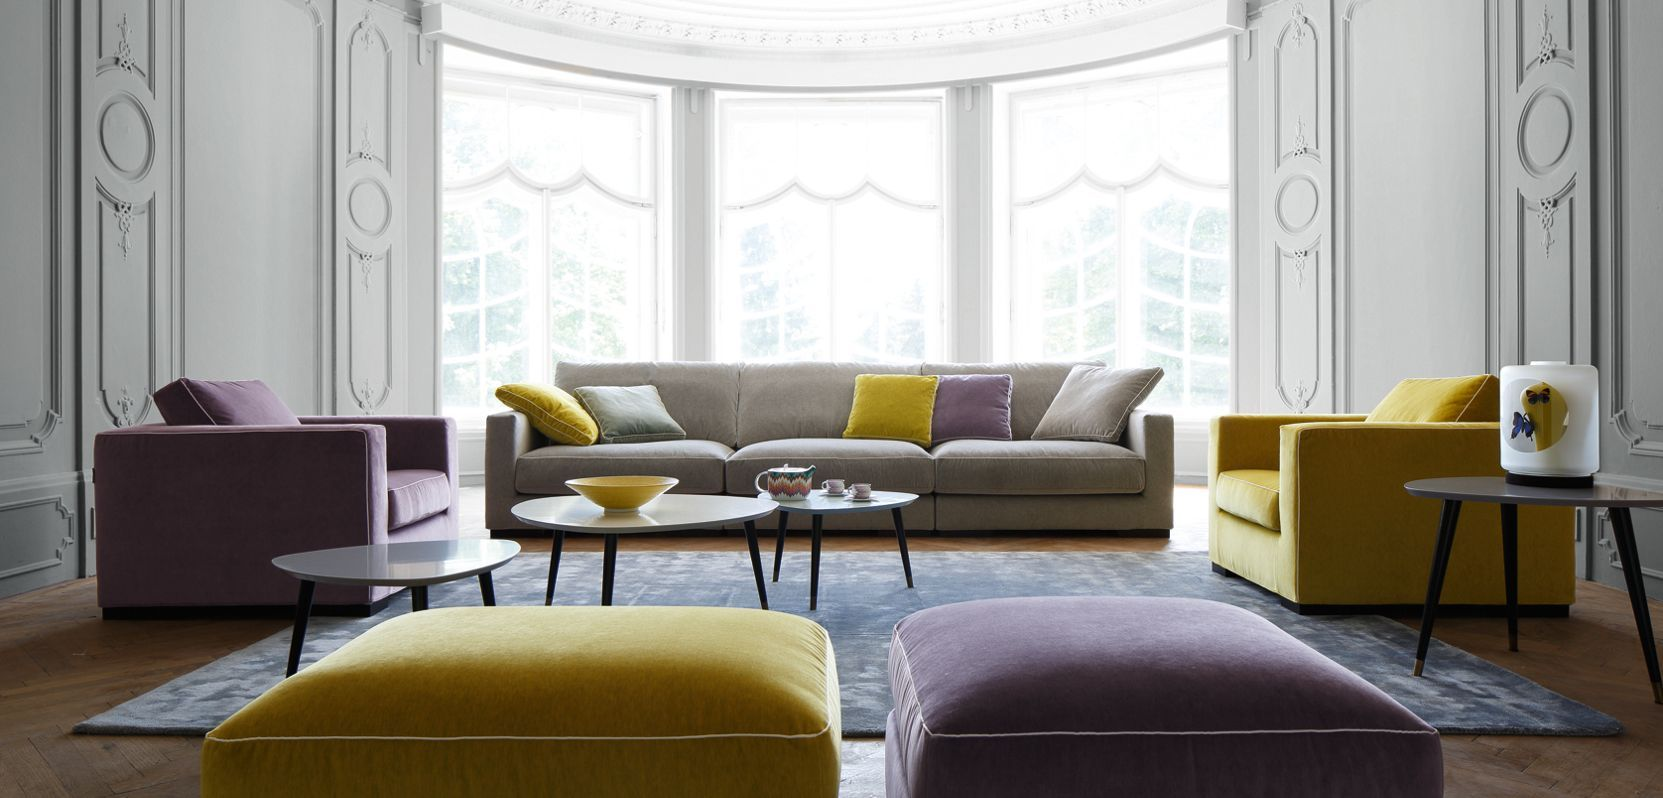 Living Room Furniture Long Island Roche Bobois Long Island 2 Straight Composition Design Studio